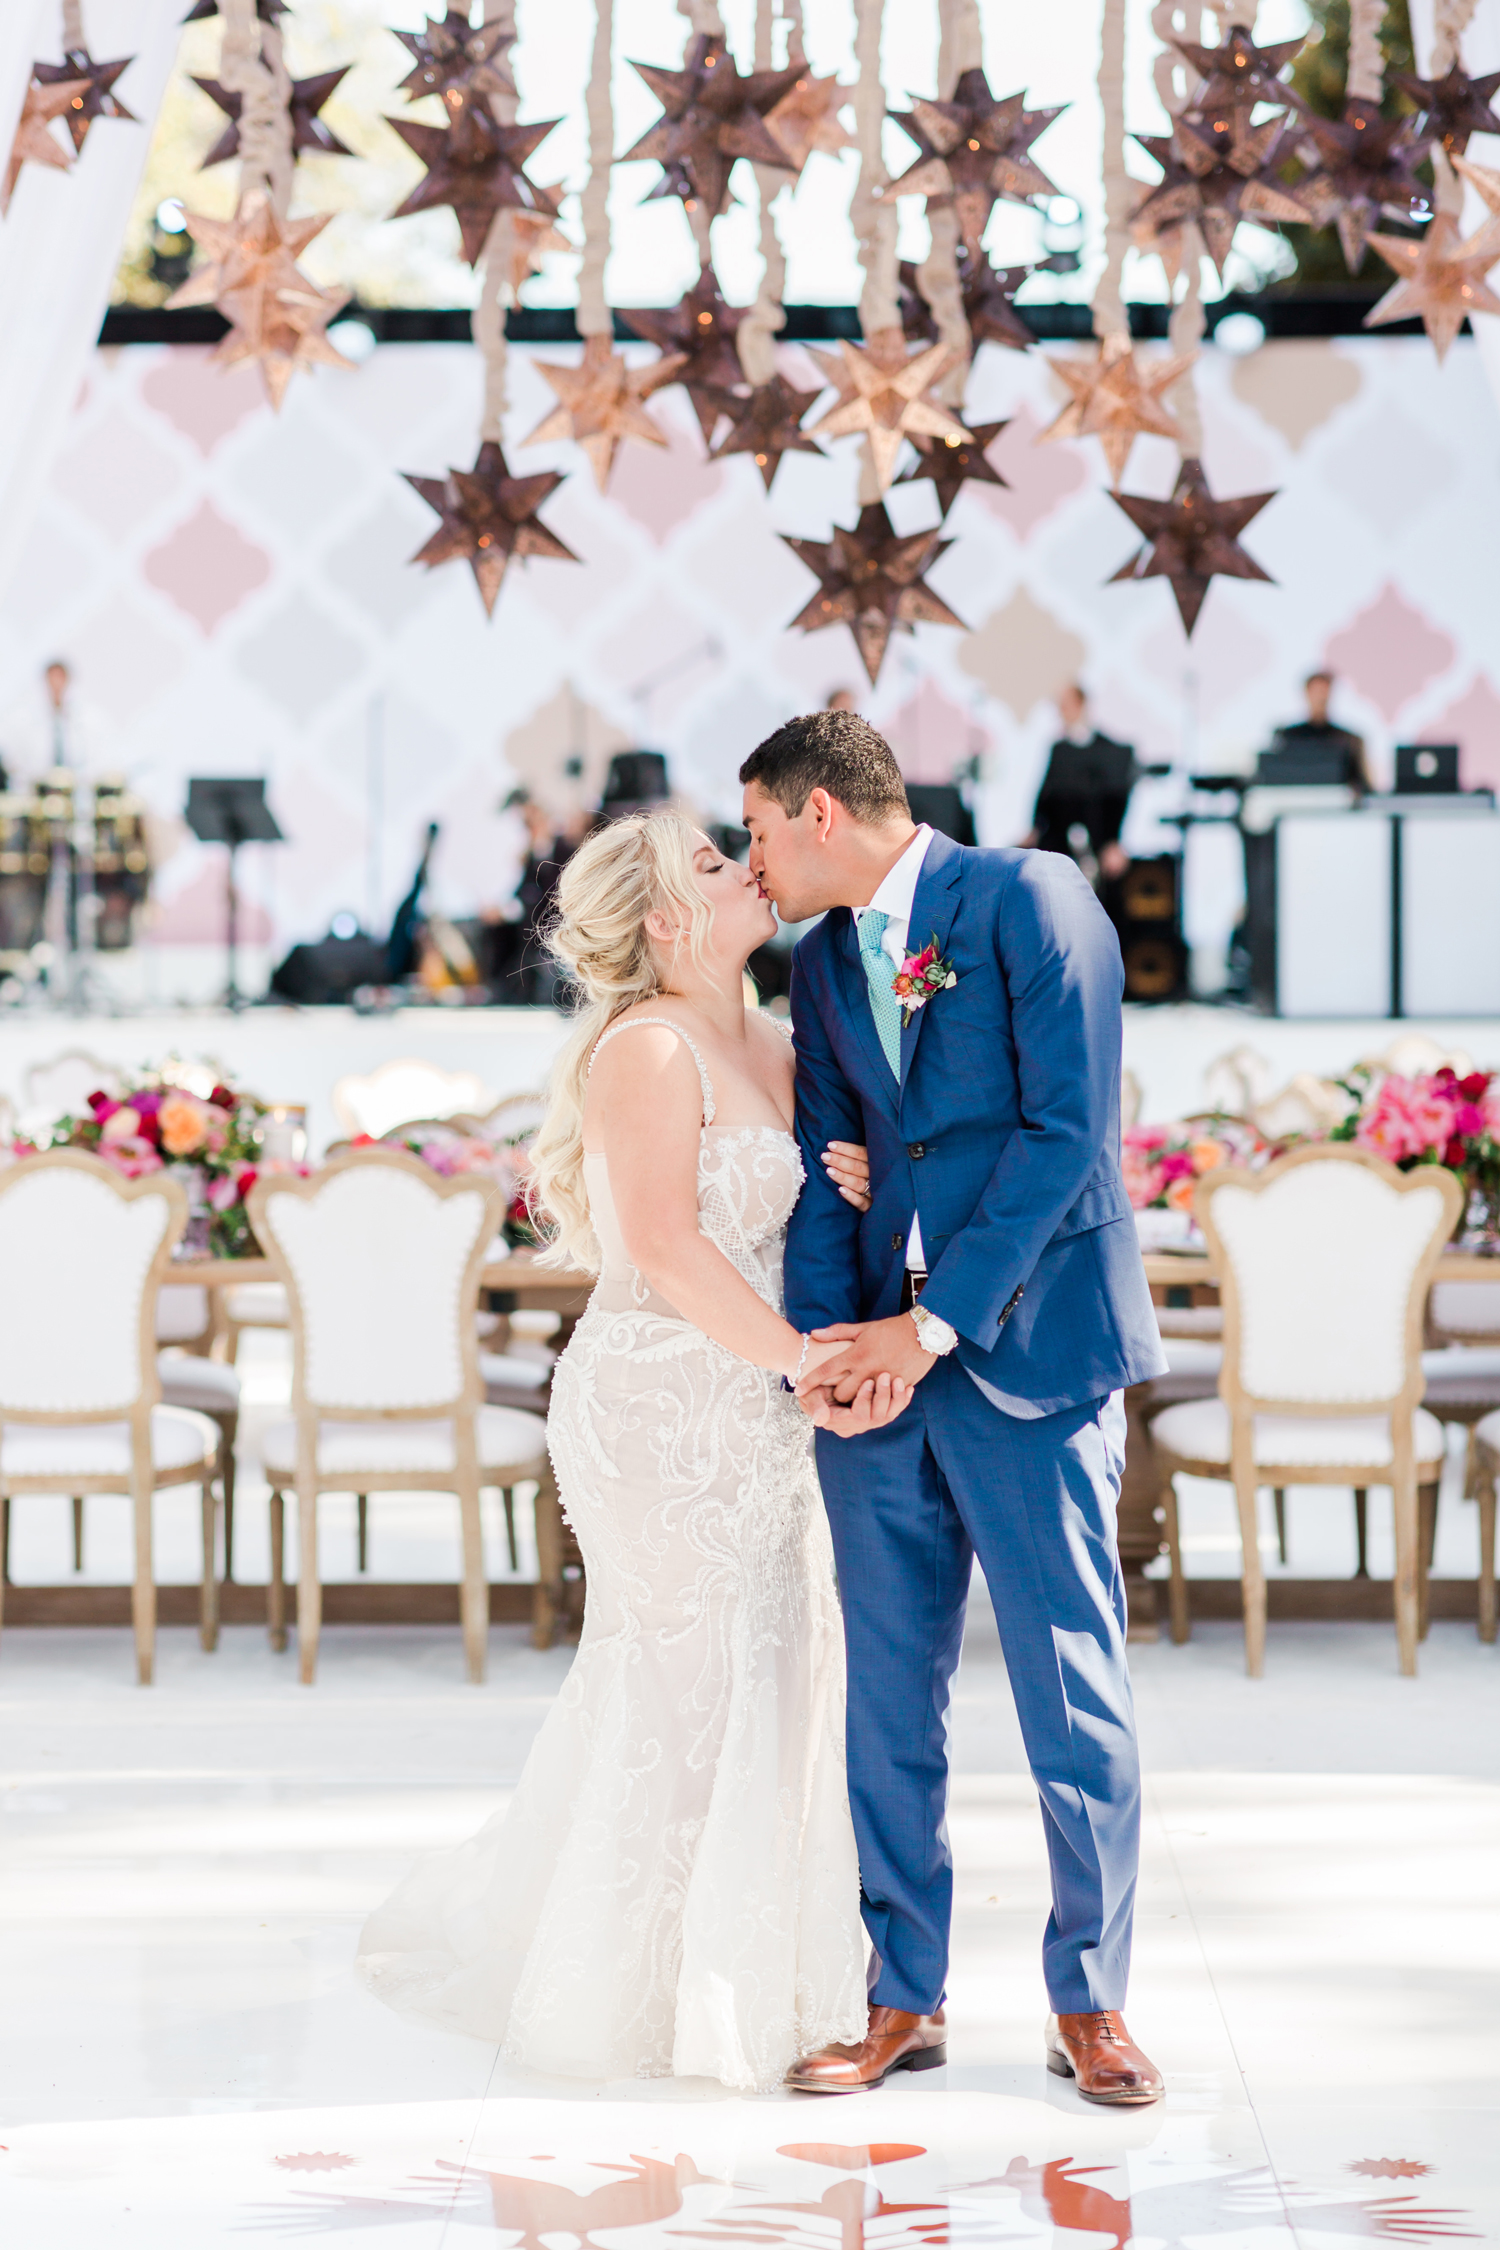 A Southwestern-Inspired Wedding Weekend in Goleta, California